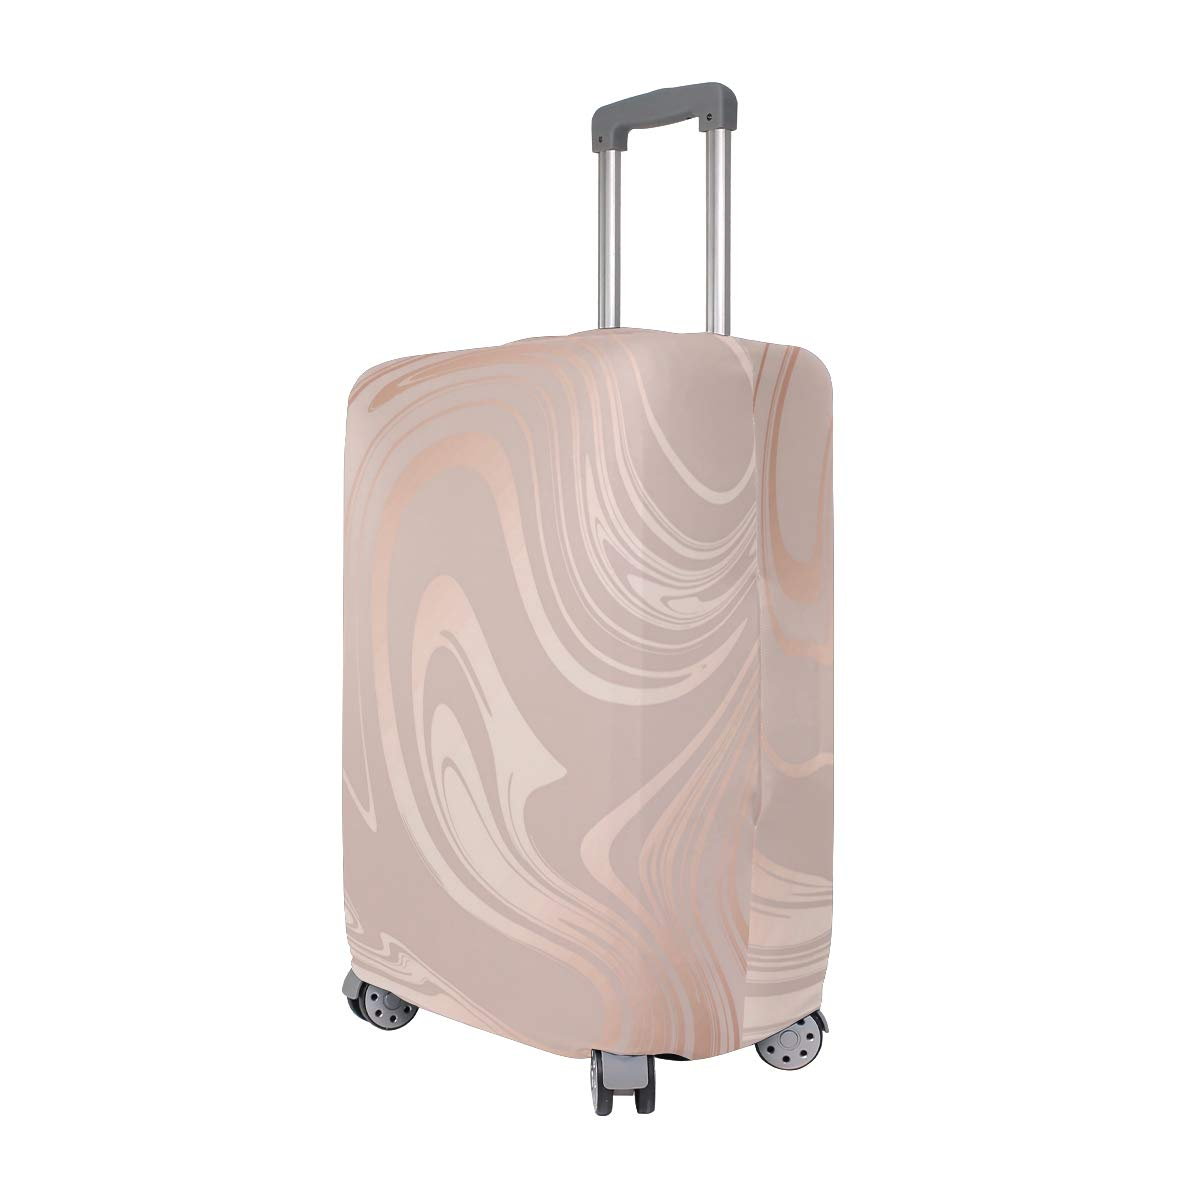 Marble Pattern Of Wallpaper Traveler Lightweight Rotating Luggage Cover Can Carry With You Can Expand Travel Bag Trolley Rolling Luggage Cover